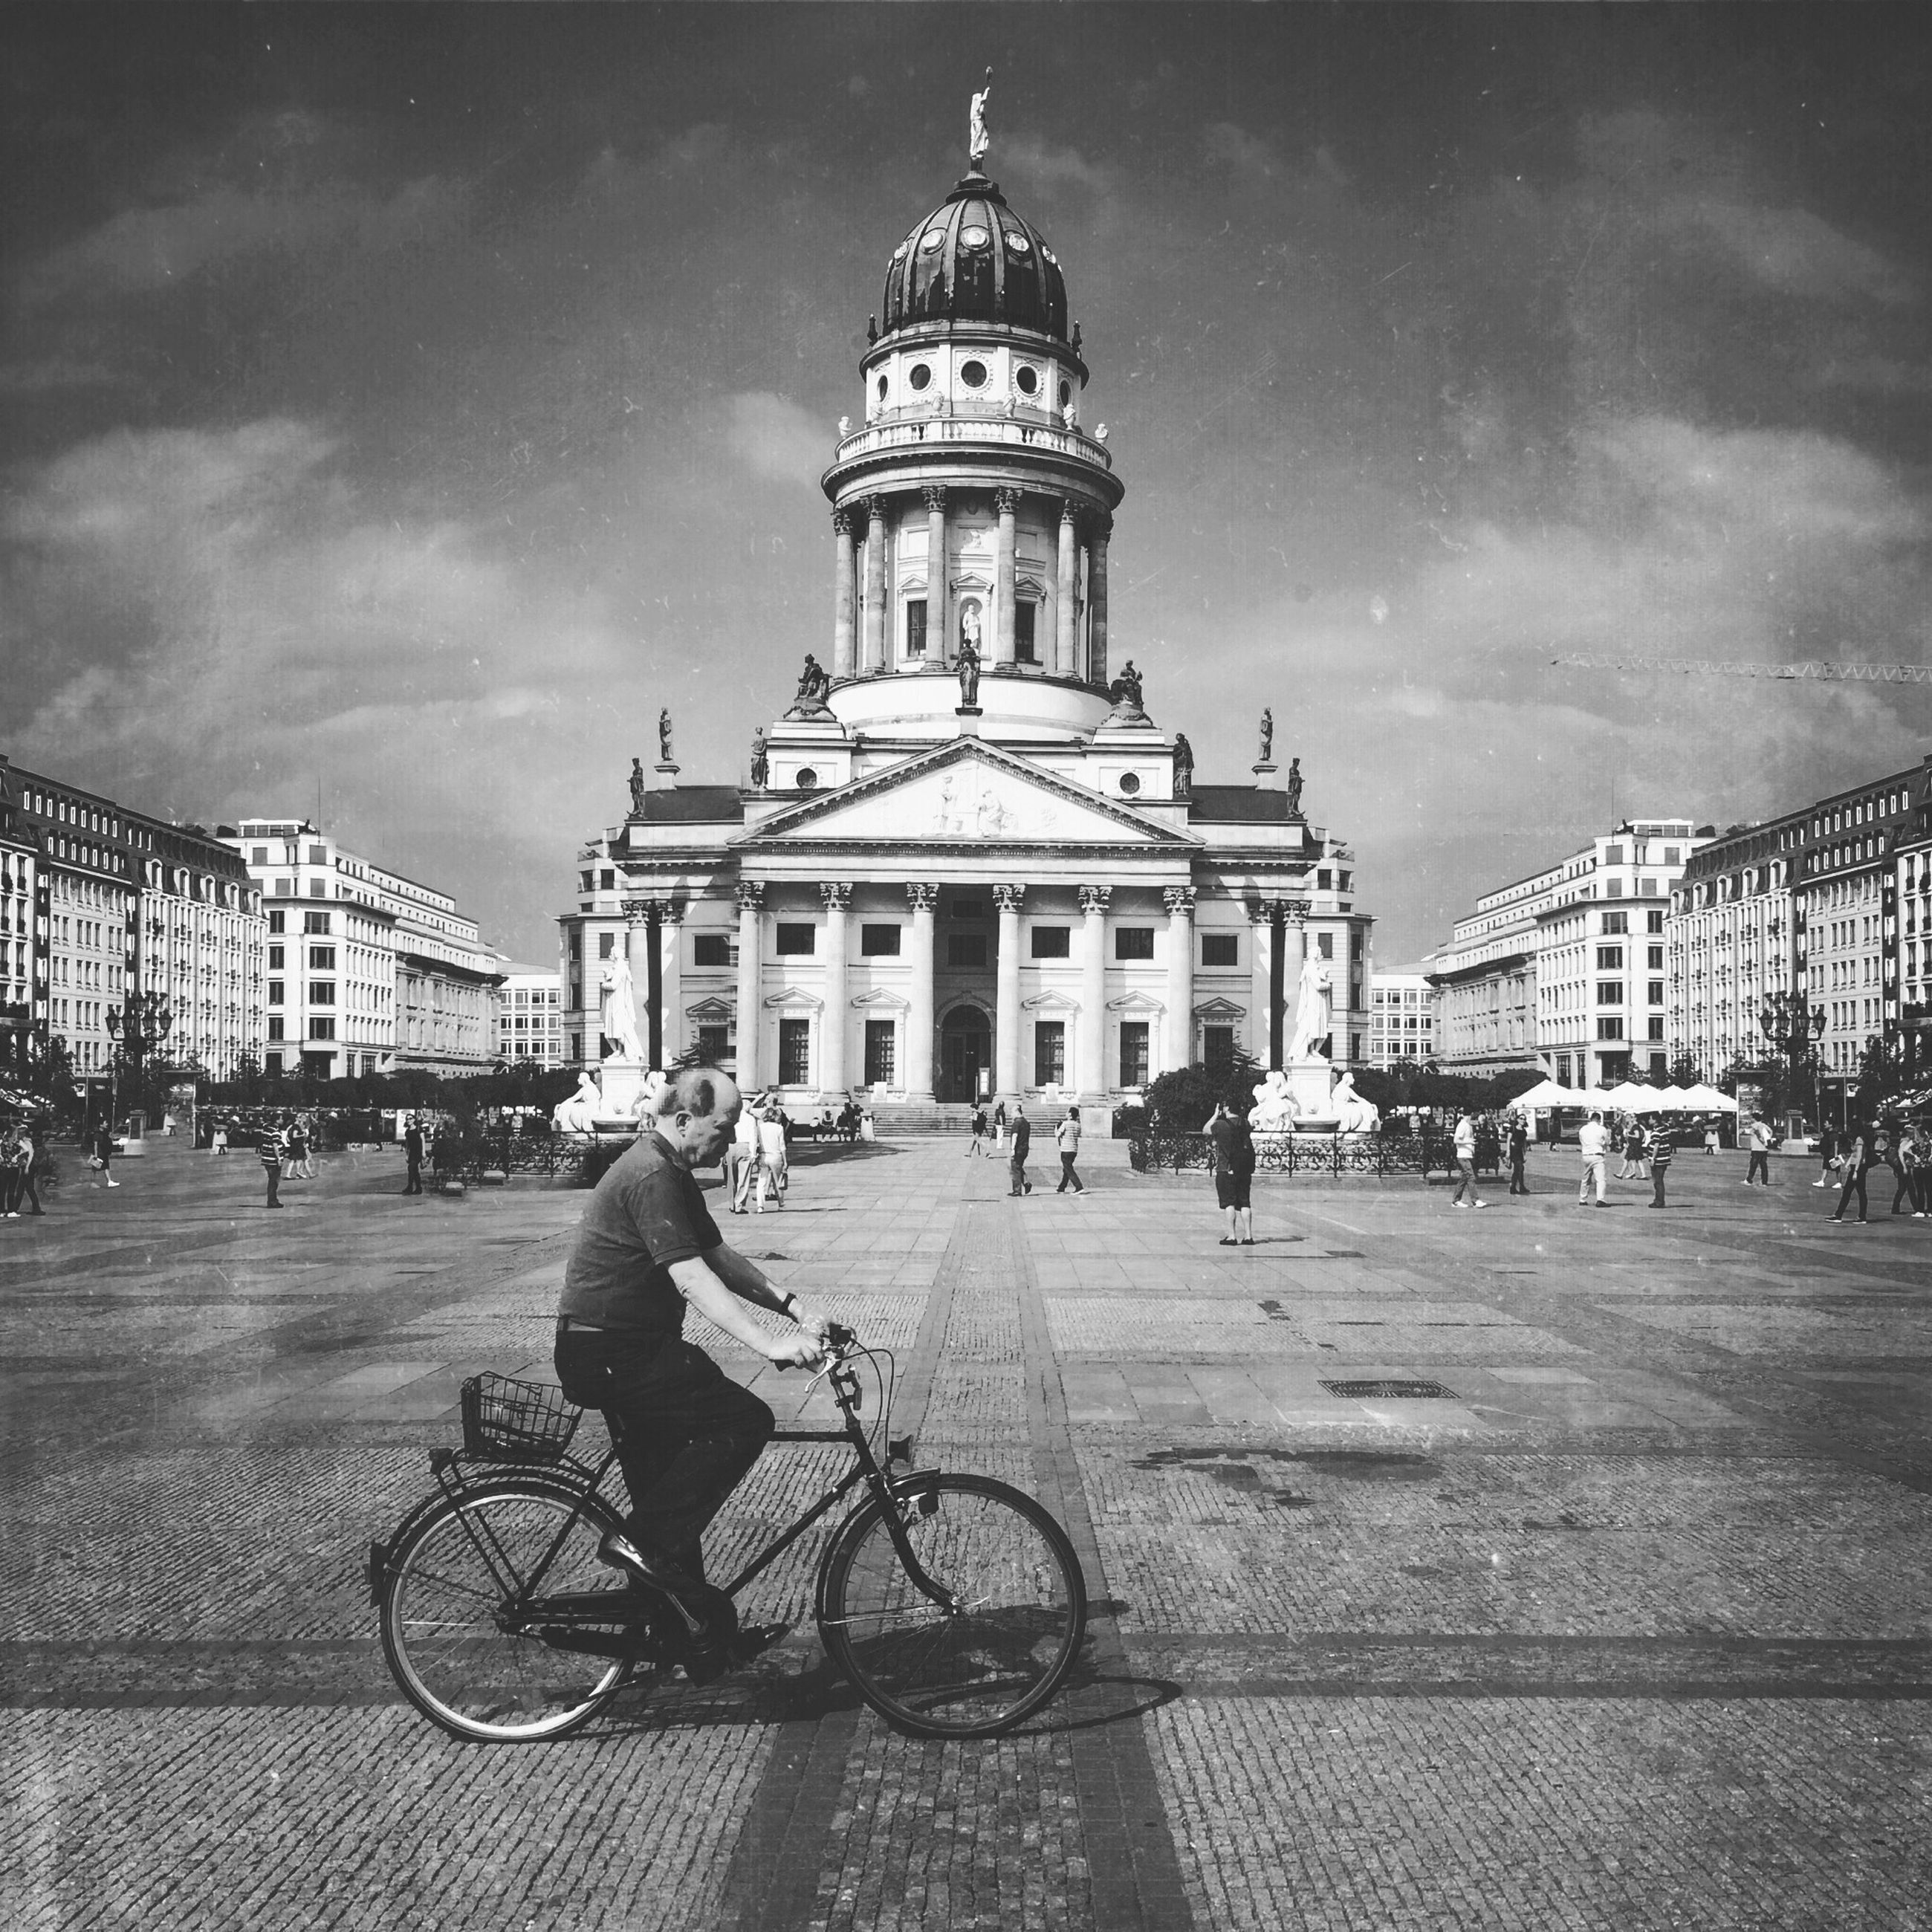 building exterior, architecture, built structure, sky, bicycle, men, street, transportation, city, land vehicle, walking, cloud - sky, lifestyles, person, mode of transport, travel, incidental people, city life, leisure activity